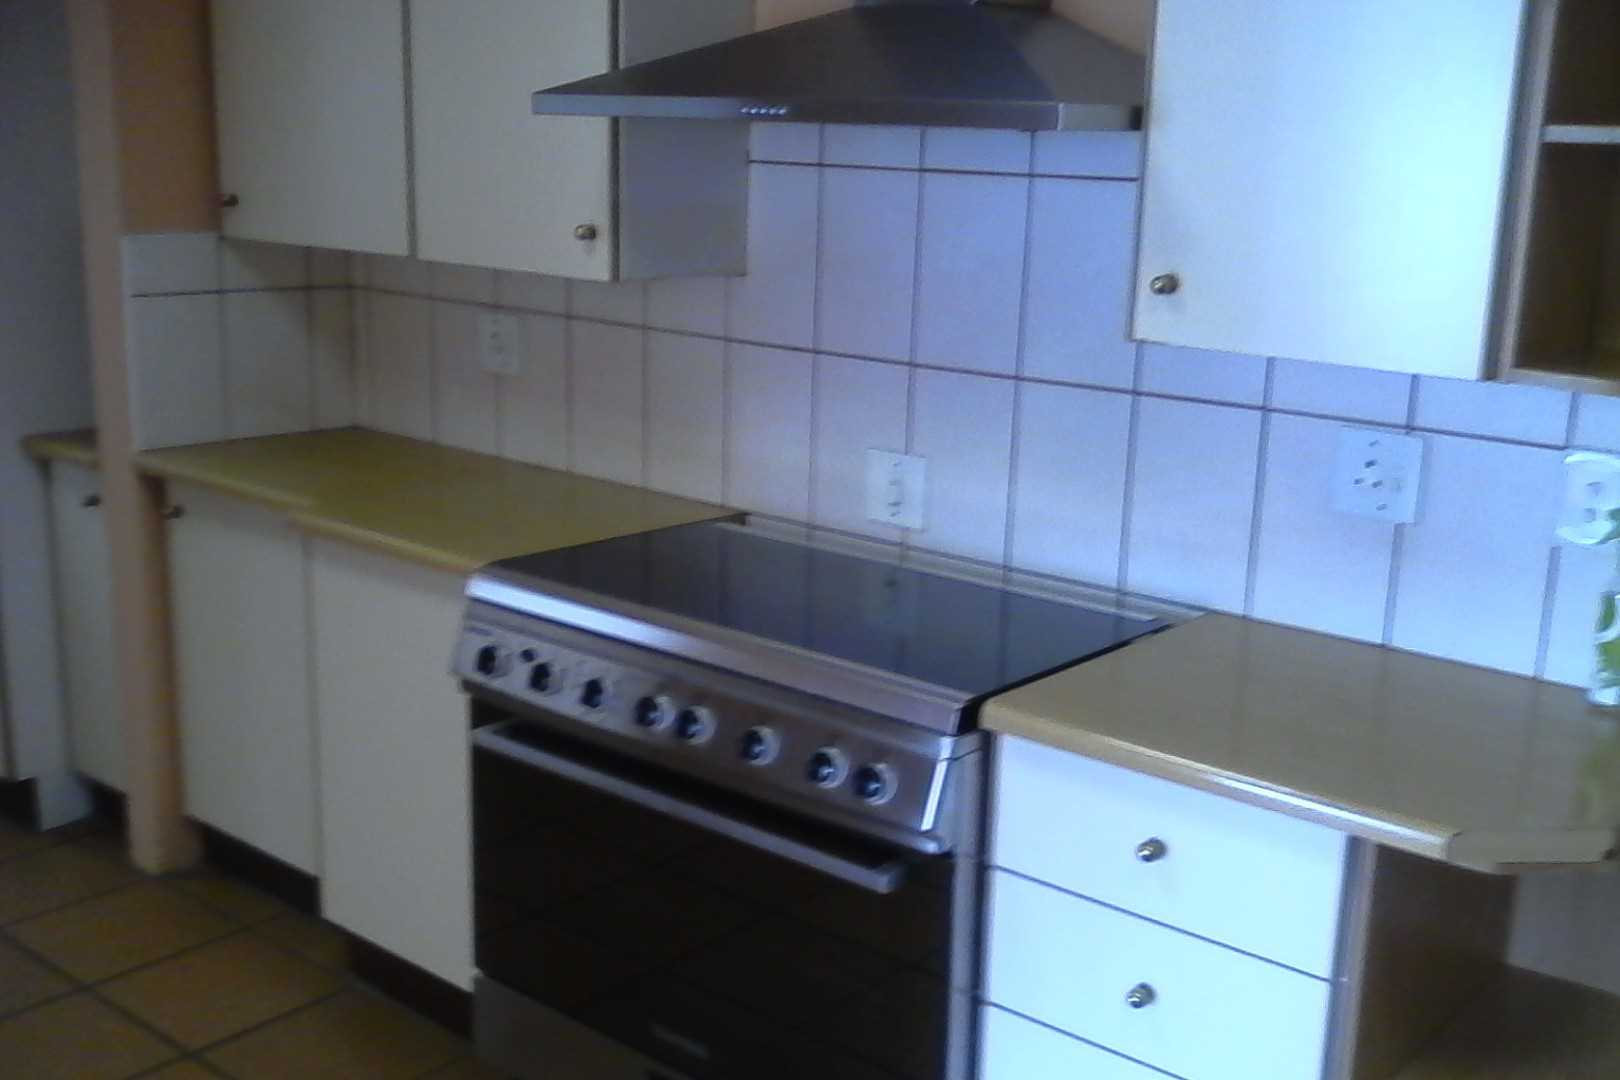 Large gas stove & oven